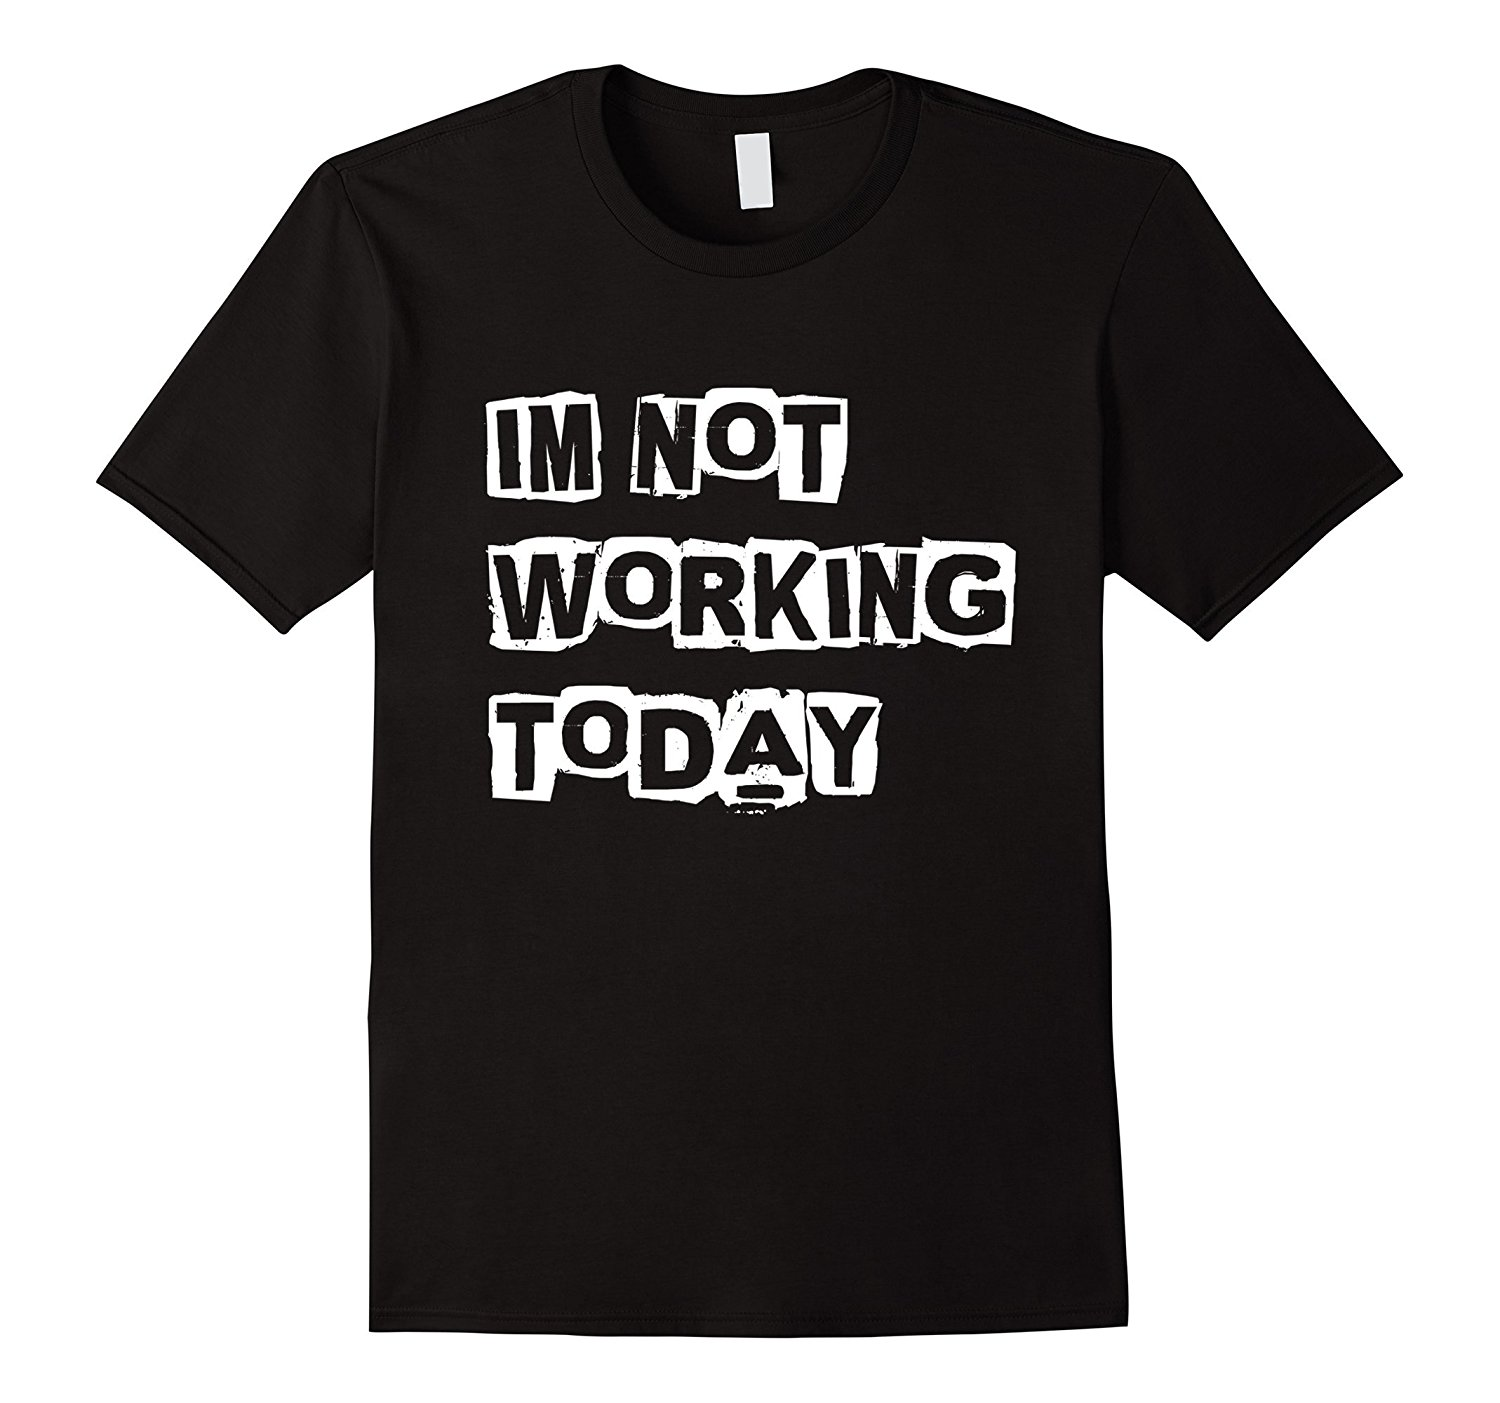 Funny Labor Day T-shirt - Im not working today